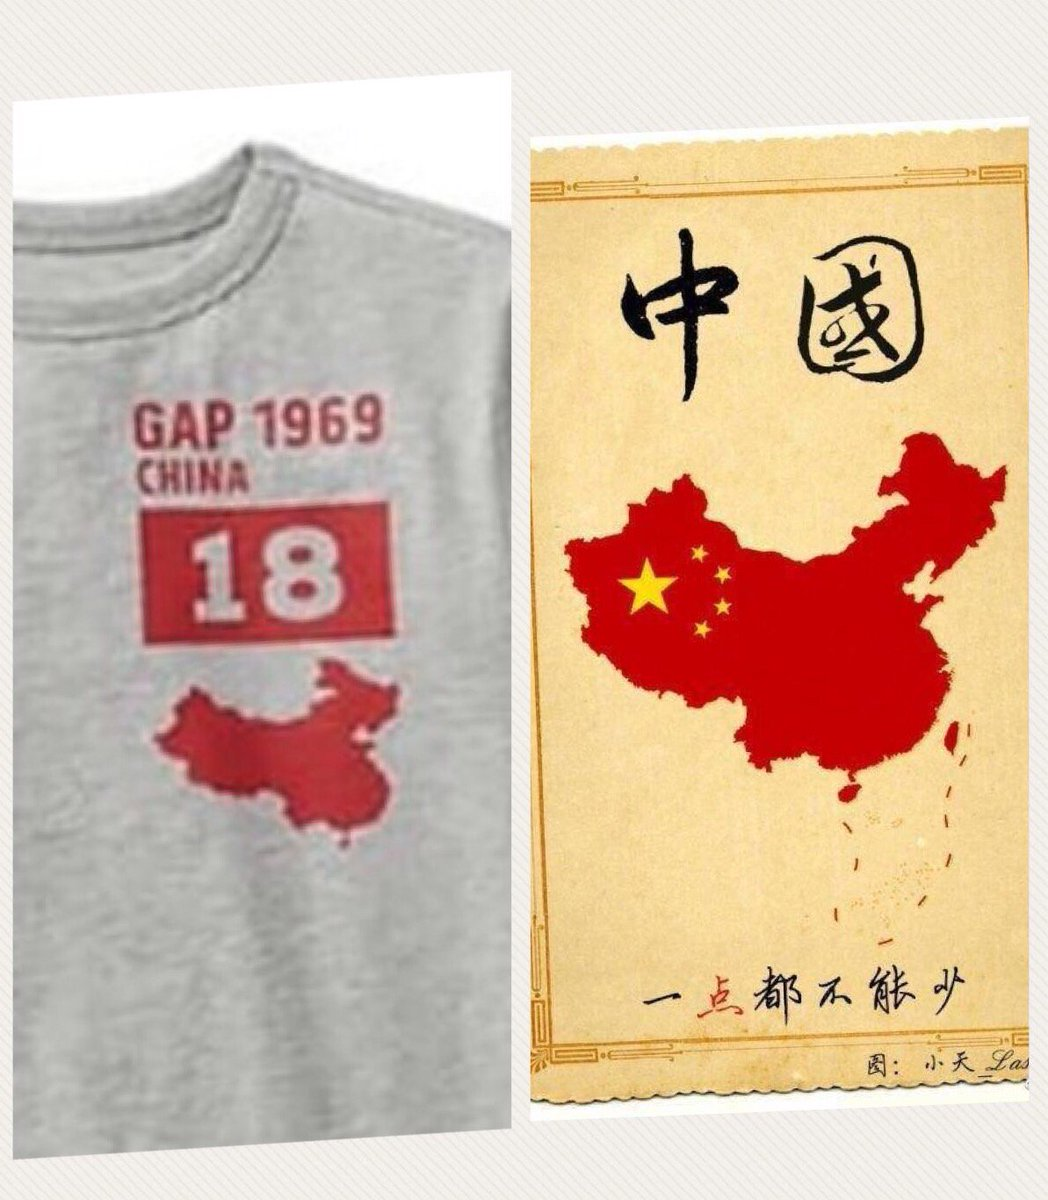 Gap China Map.Richard Southern On Twitter The Gap Is Apologizing For Selling A T